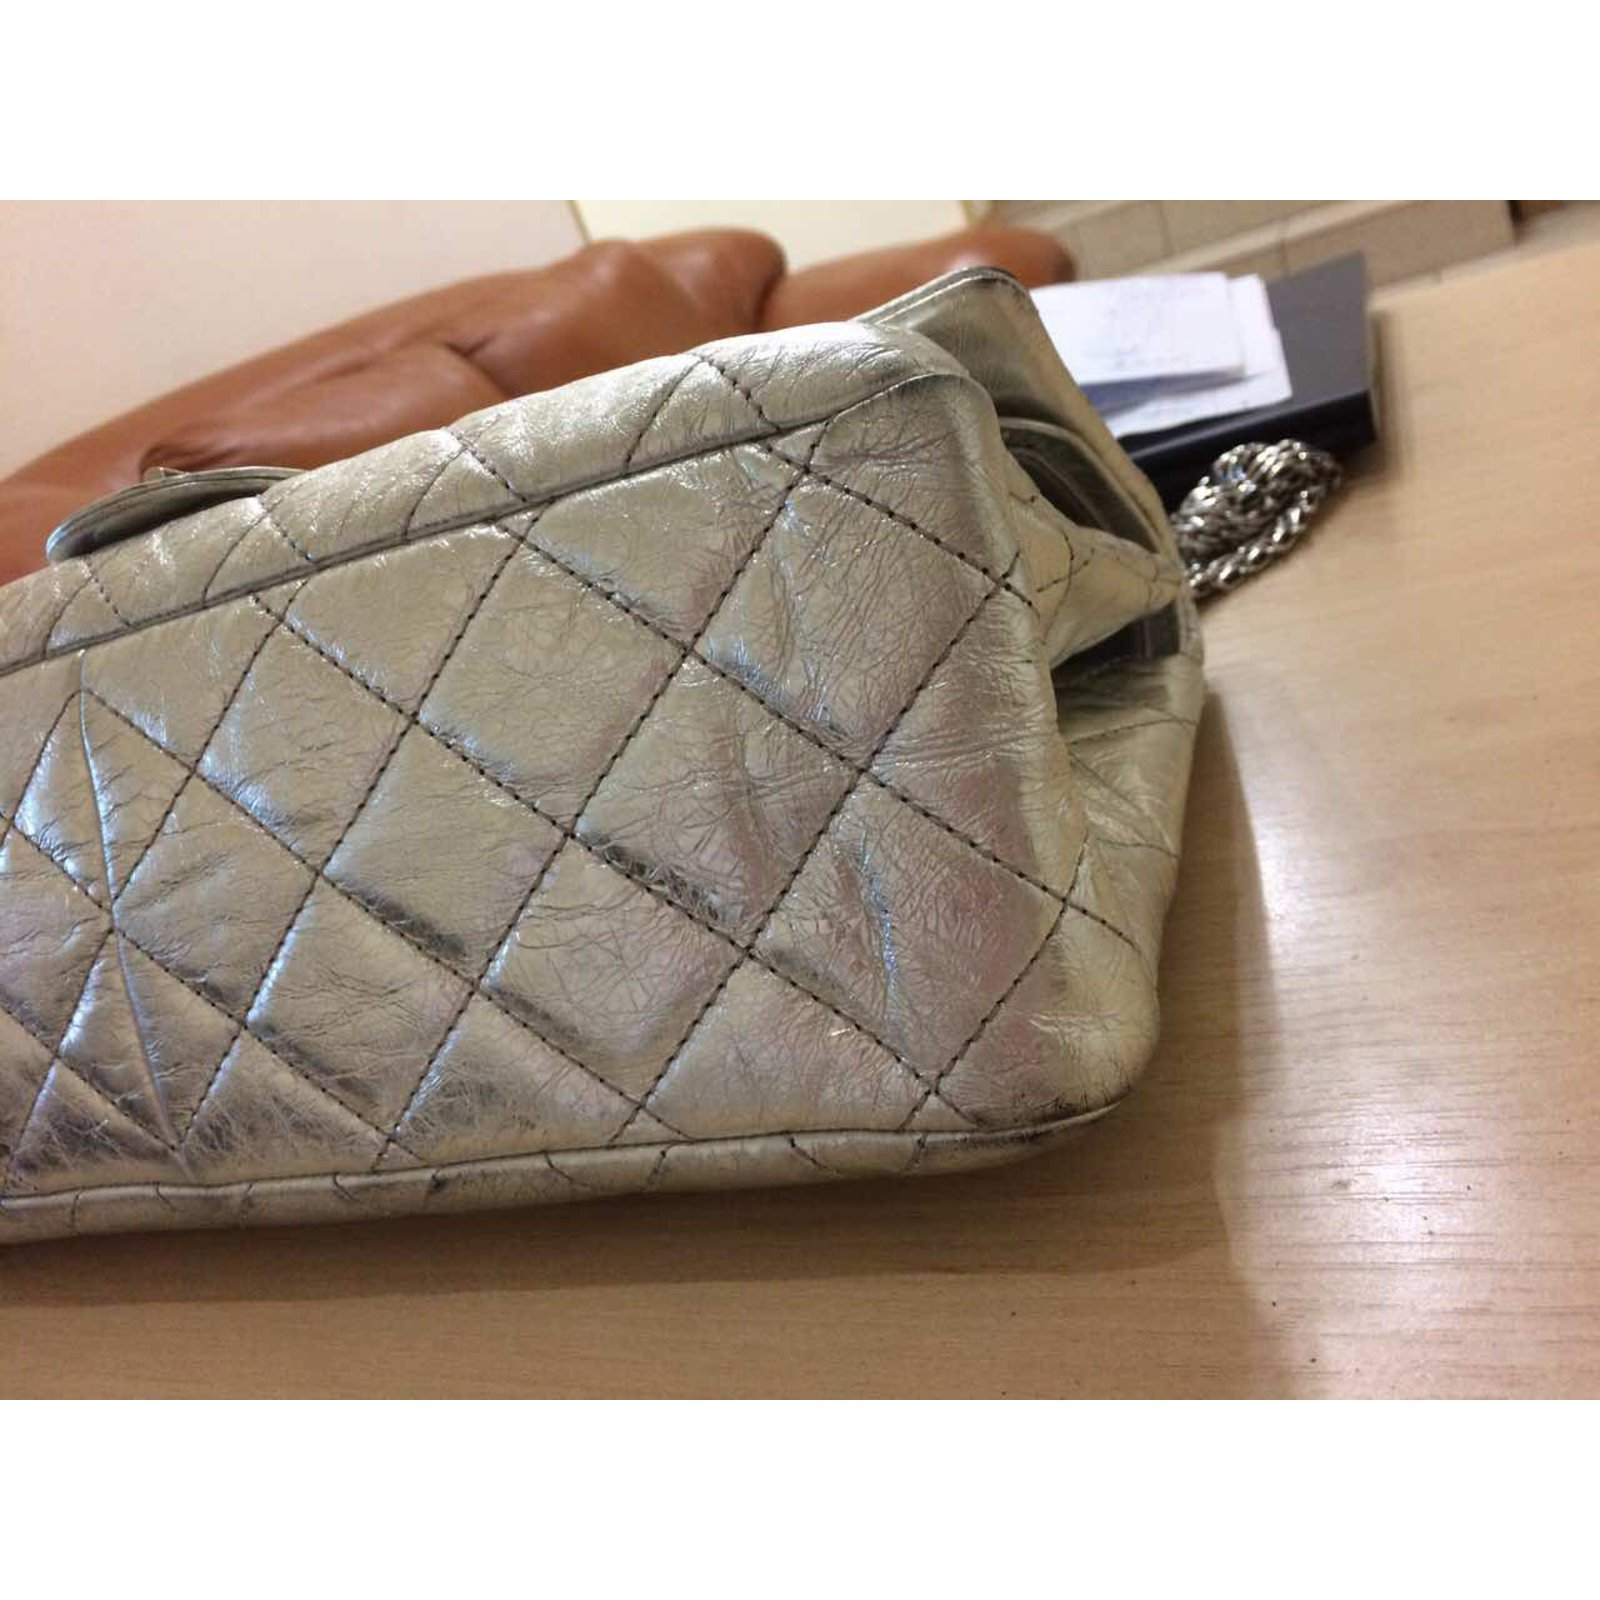 3e97cc8a919b Facebook · Pin This. Chanel Silver Metallic 2.55 Reissue Quilted Classic  Leather 227 Jumbo Flap Bag Handbags Leather Silvery ref